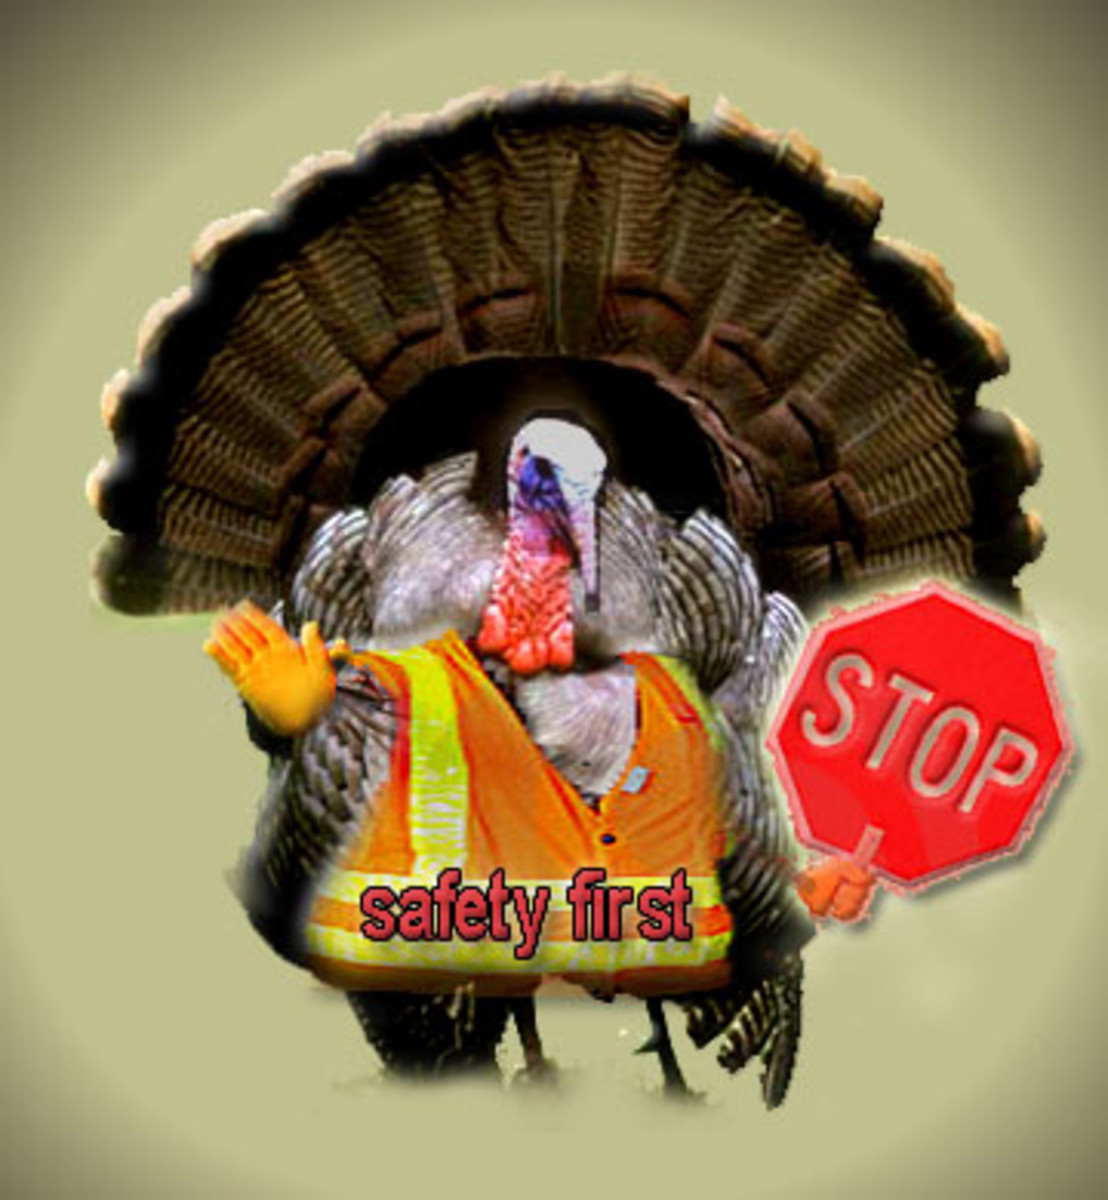 TURKEY SAFETY FIRST!